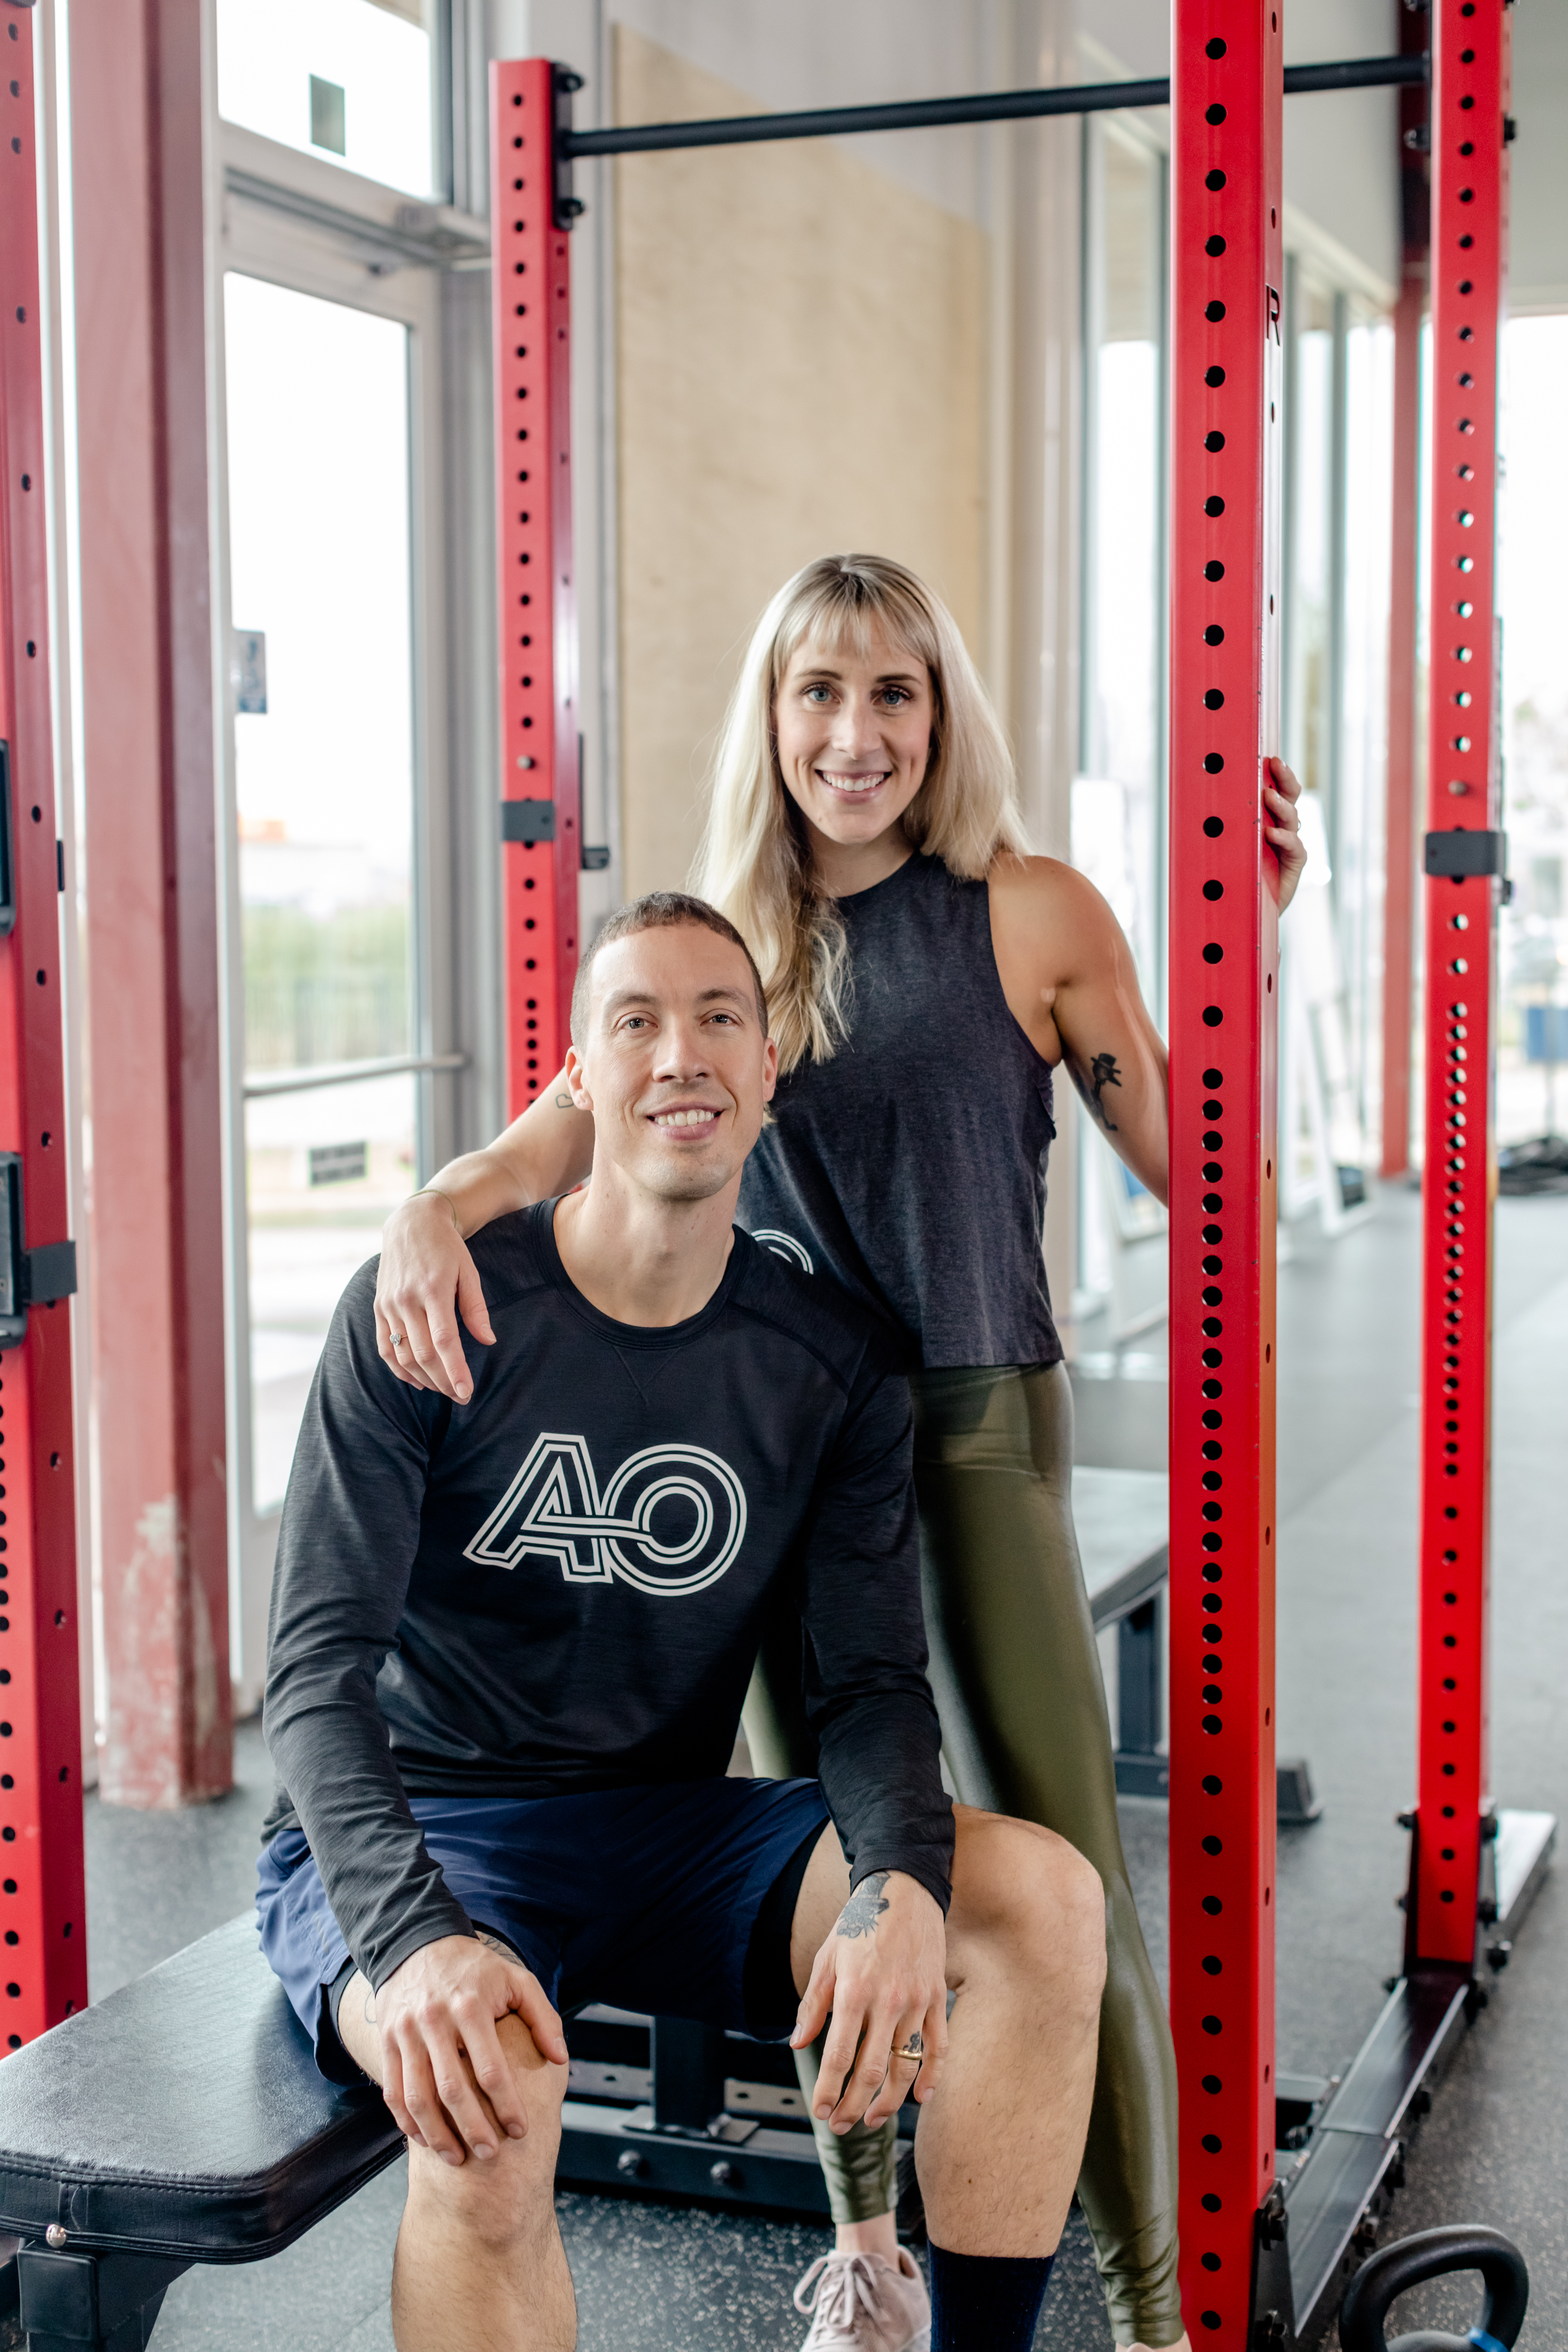 Pat and Brittaney Cook, Owners of Athletic Outcomes